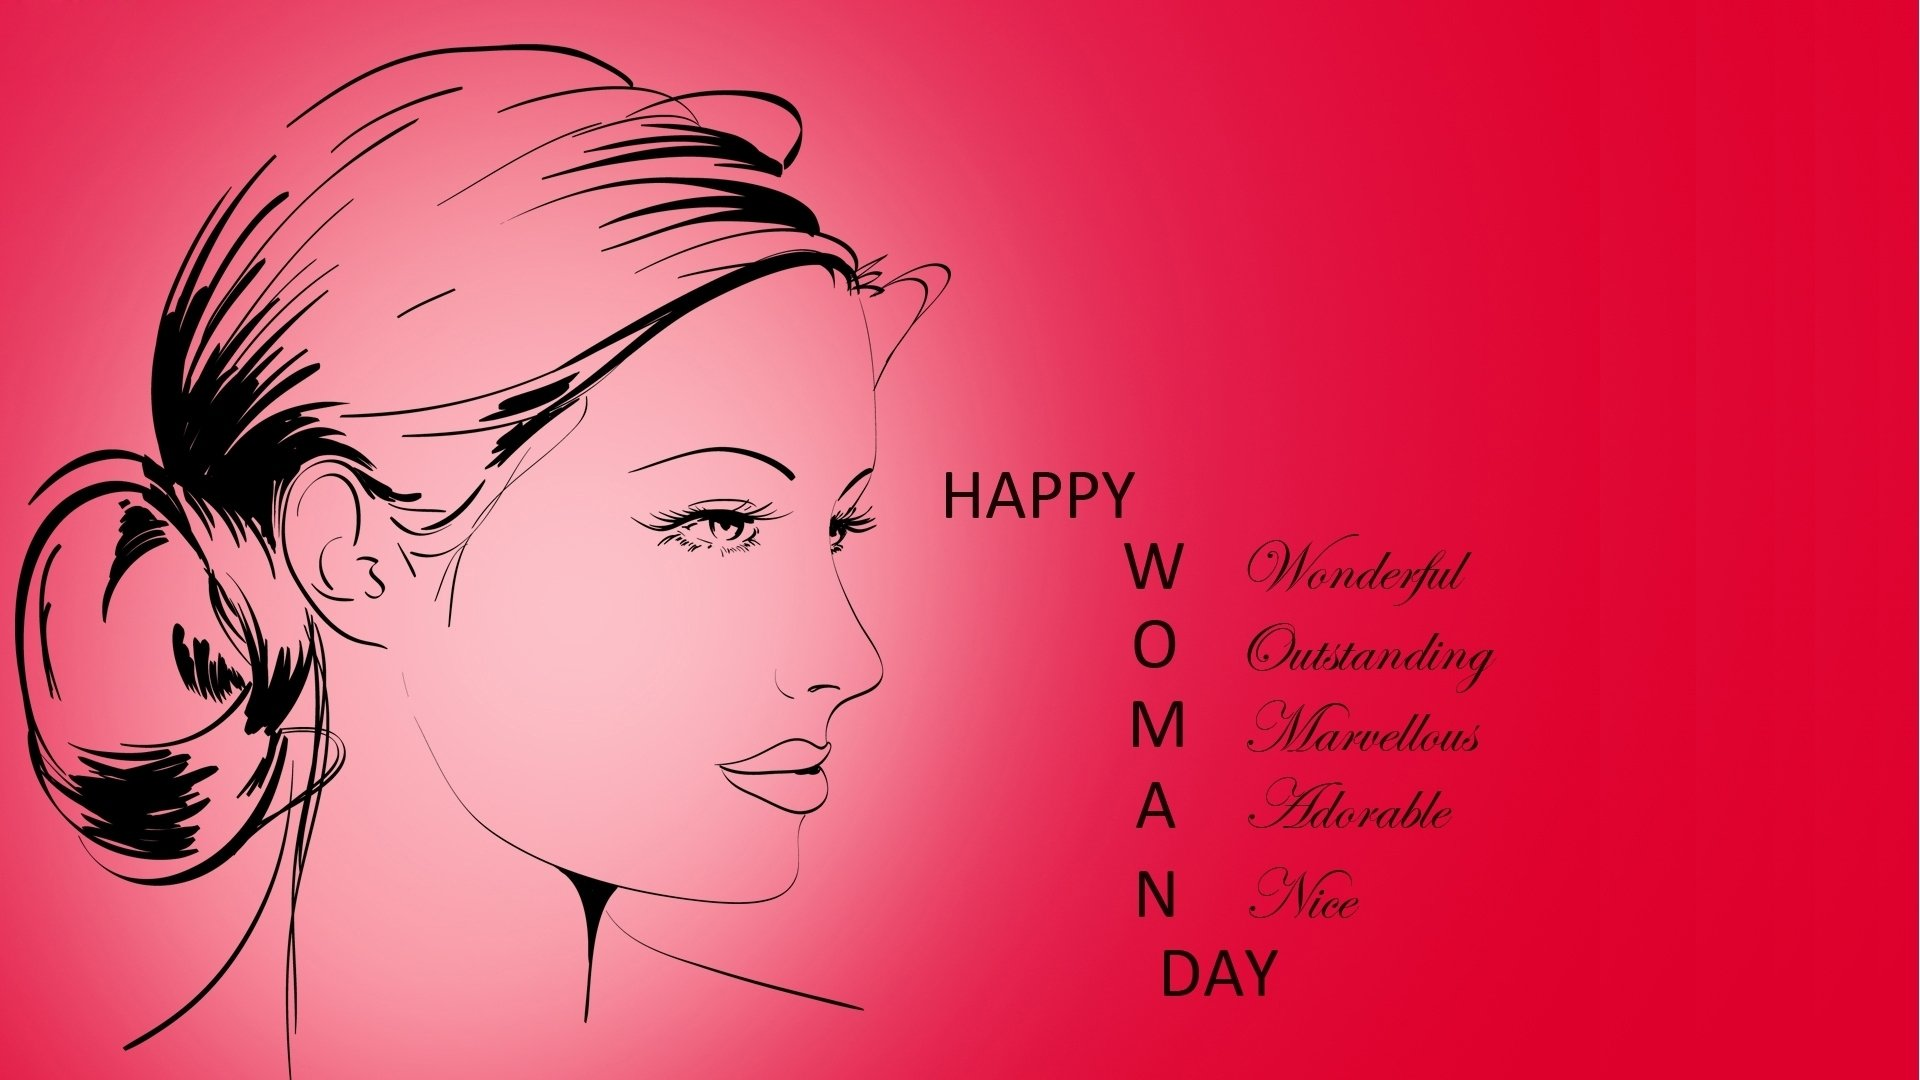 Holiday - Women's Day  Happy Women's Day Face Woman Girl Statement Wallpaper